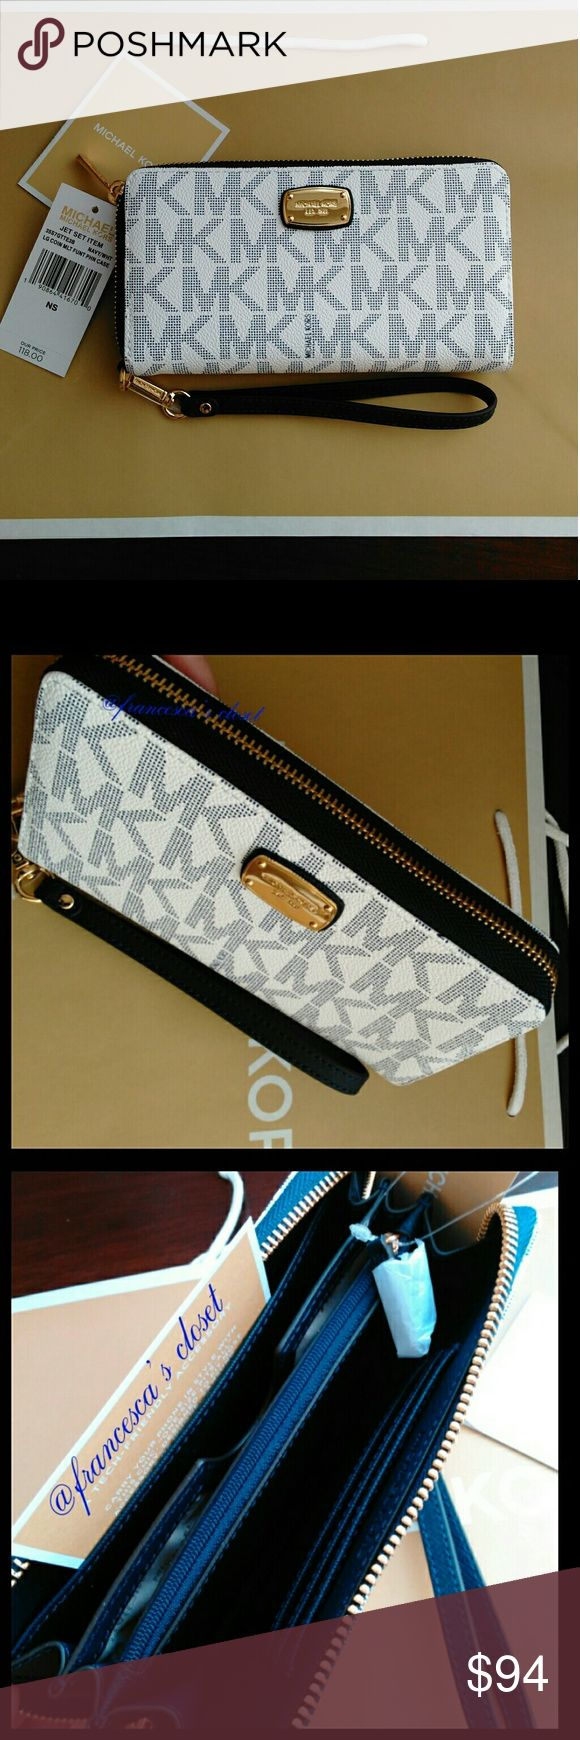 """Michael Kors Jet Set Large Phone Wallet new 100% Authentic. Brand new with tag attached. Navy/White MK Monogram with gold tone hardware. Measurements L 7"""" H 4"""" W 1"""" Smoke/pet free home. Comes with MK paper bag. Price is firm. Michael Kors Bags Wallets"""